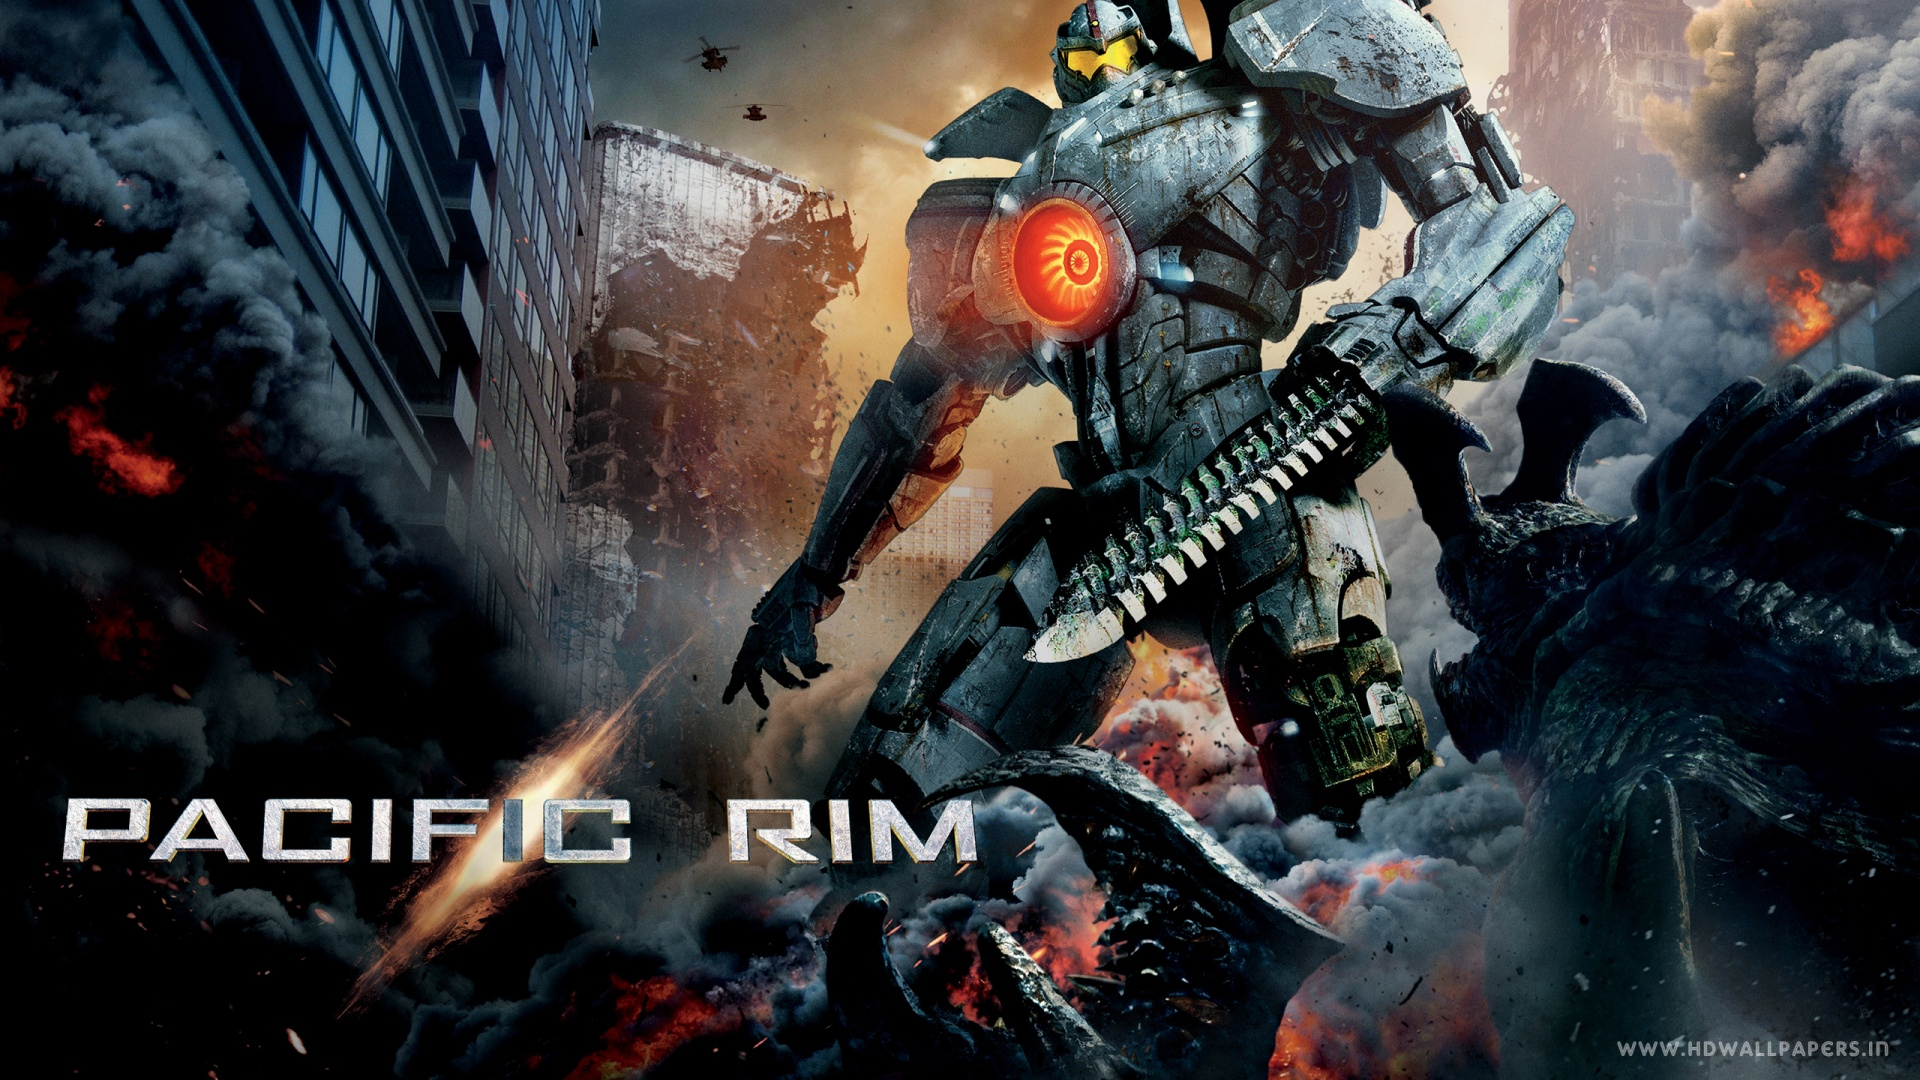 ... x 1440 Original. Description: Download Pacific Rim ...